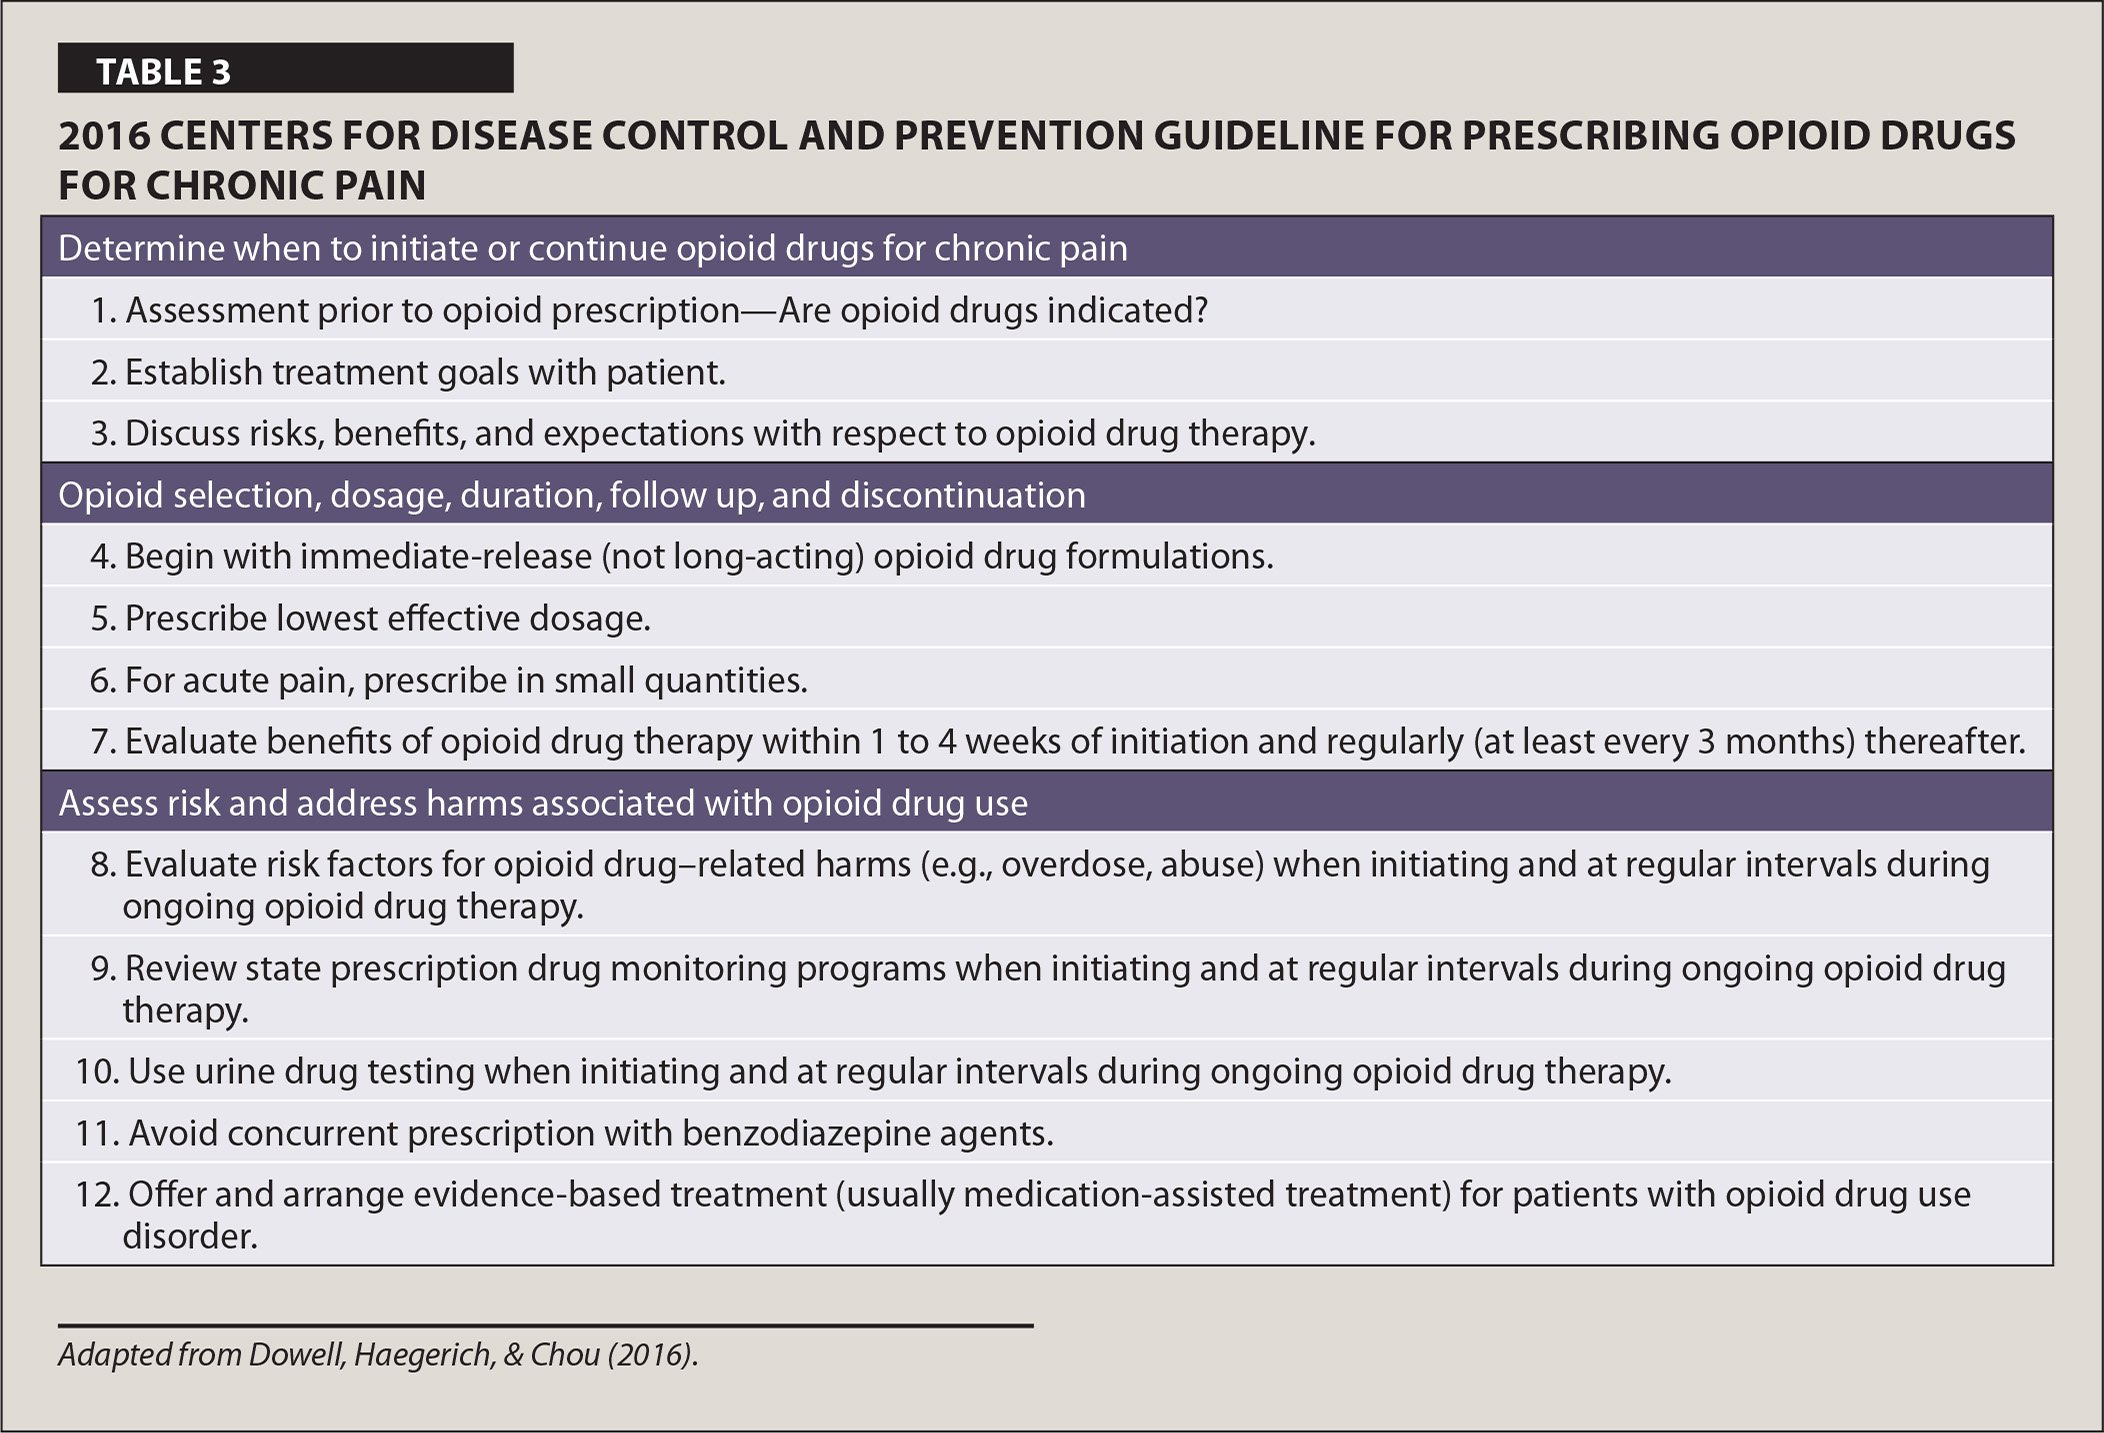 2016 Centers for Disease Control and Prevention Guideline for Prescribing Opioid Drugs for Chronic Pain